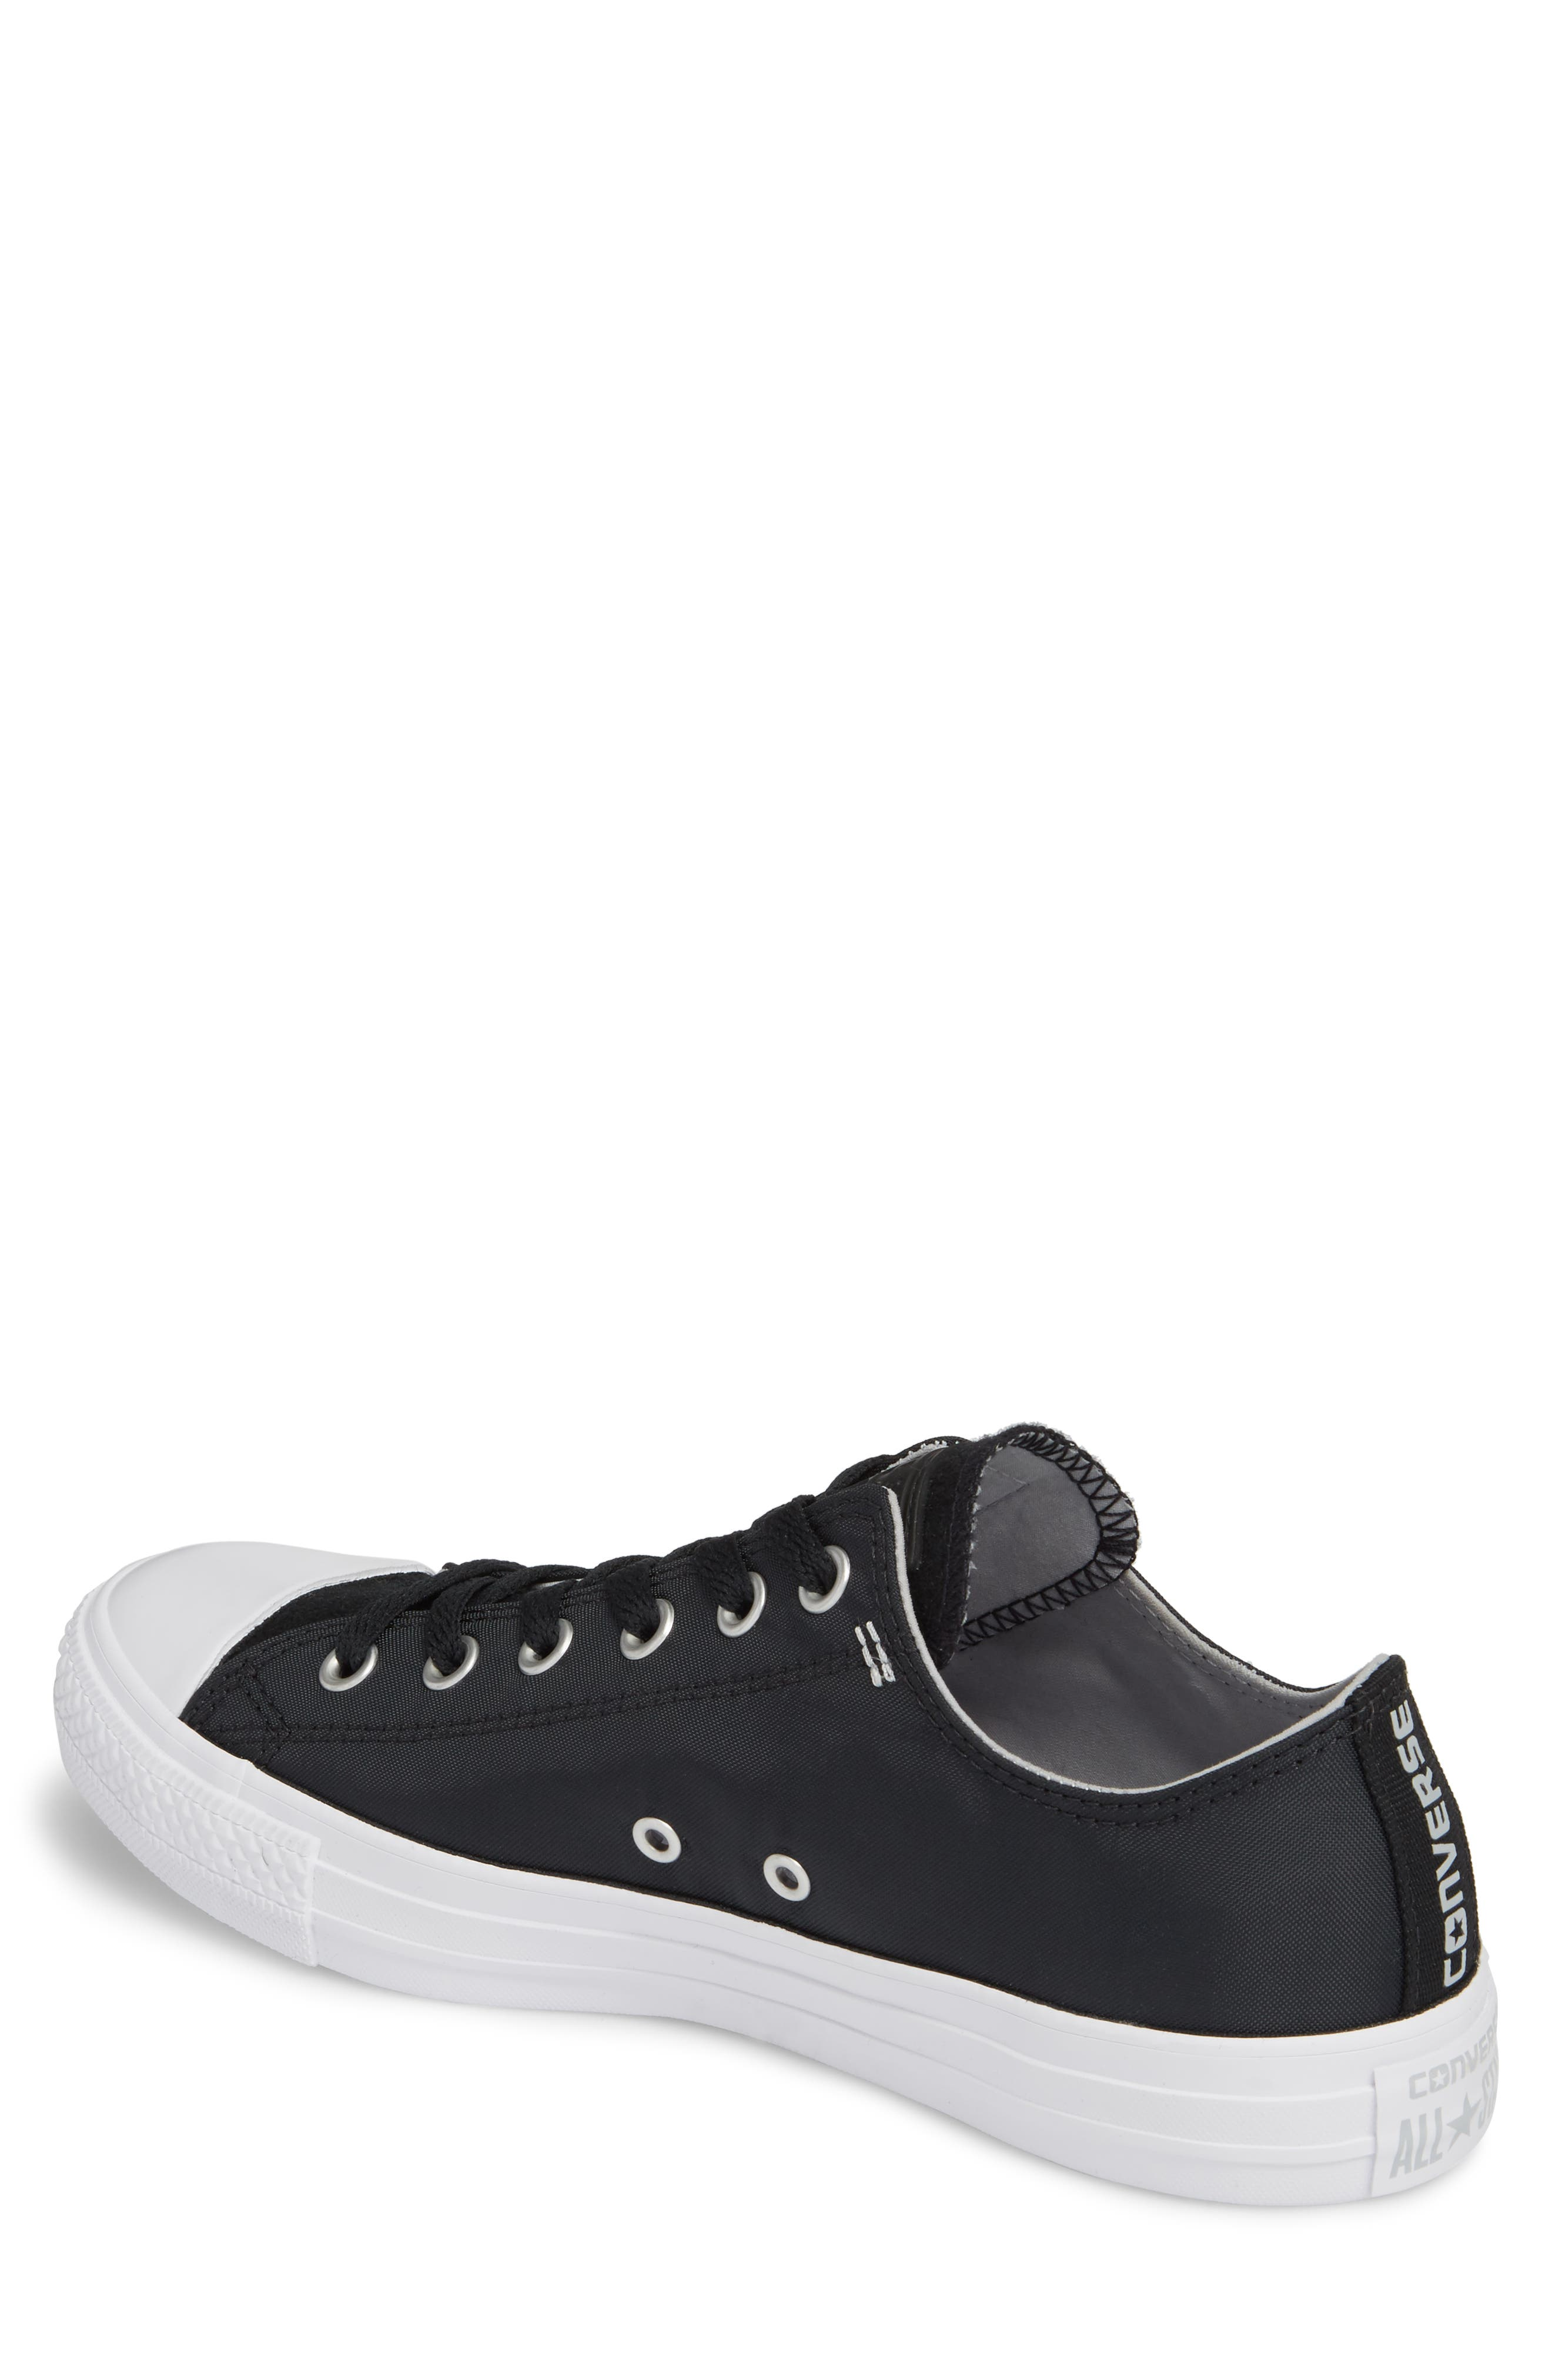 All Star<sup>®</sup> OX Low Top Sneaker,                             Alternate thumbnail 2, color,                             Black